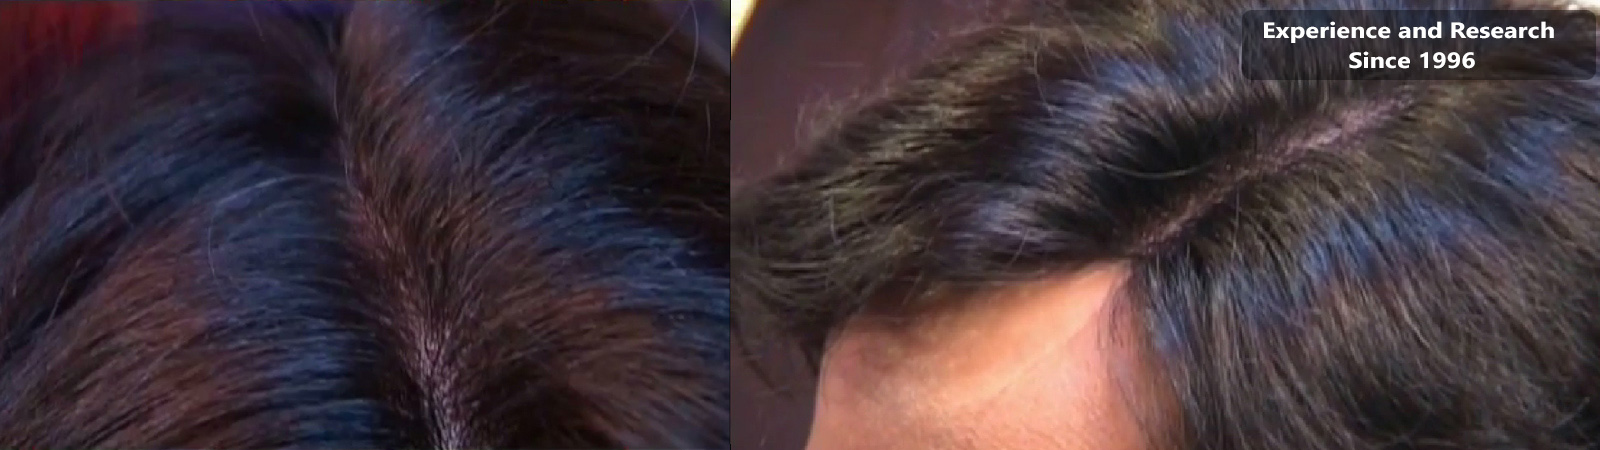 Hair Weaving Hair Baldness Treatment Hear Weaving Non Surgical